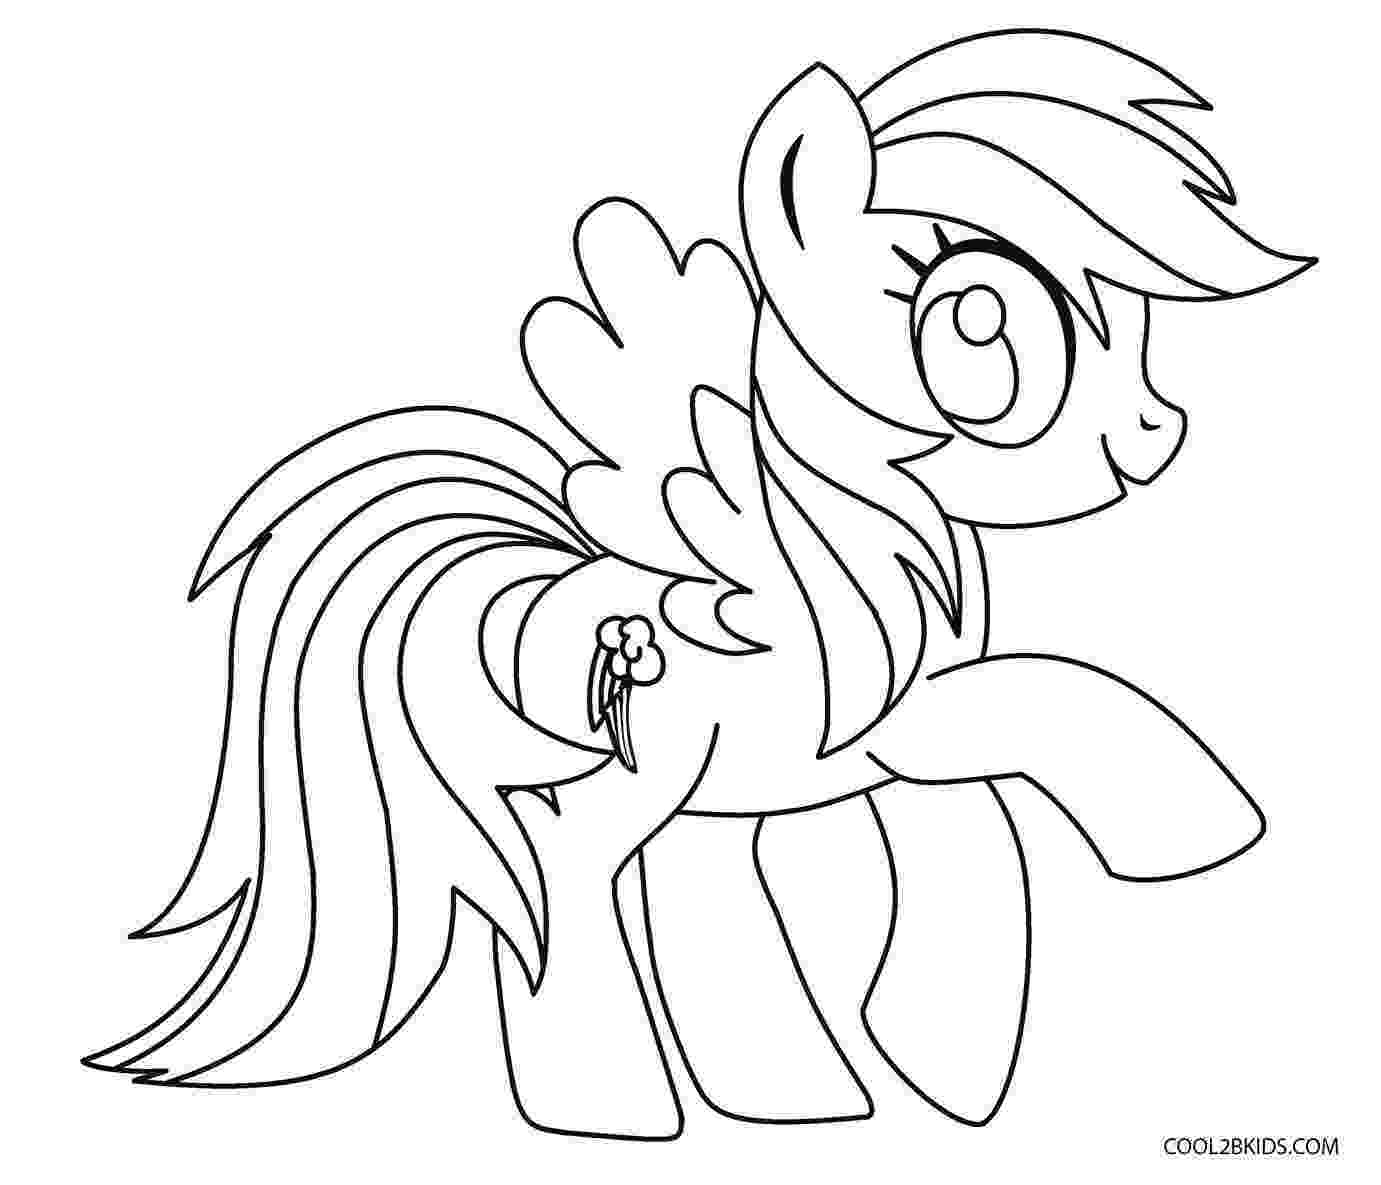 rainbow dash pictures to color rainbow dash coloring pages best coloring pages for kids to dash pictures color rainbow